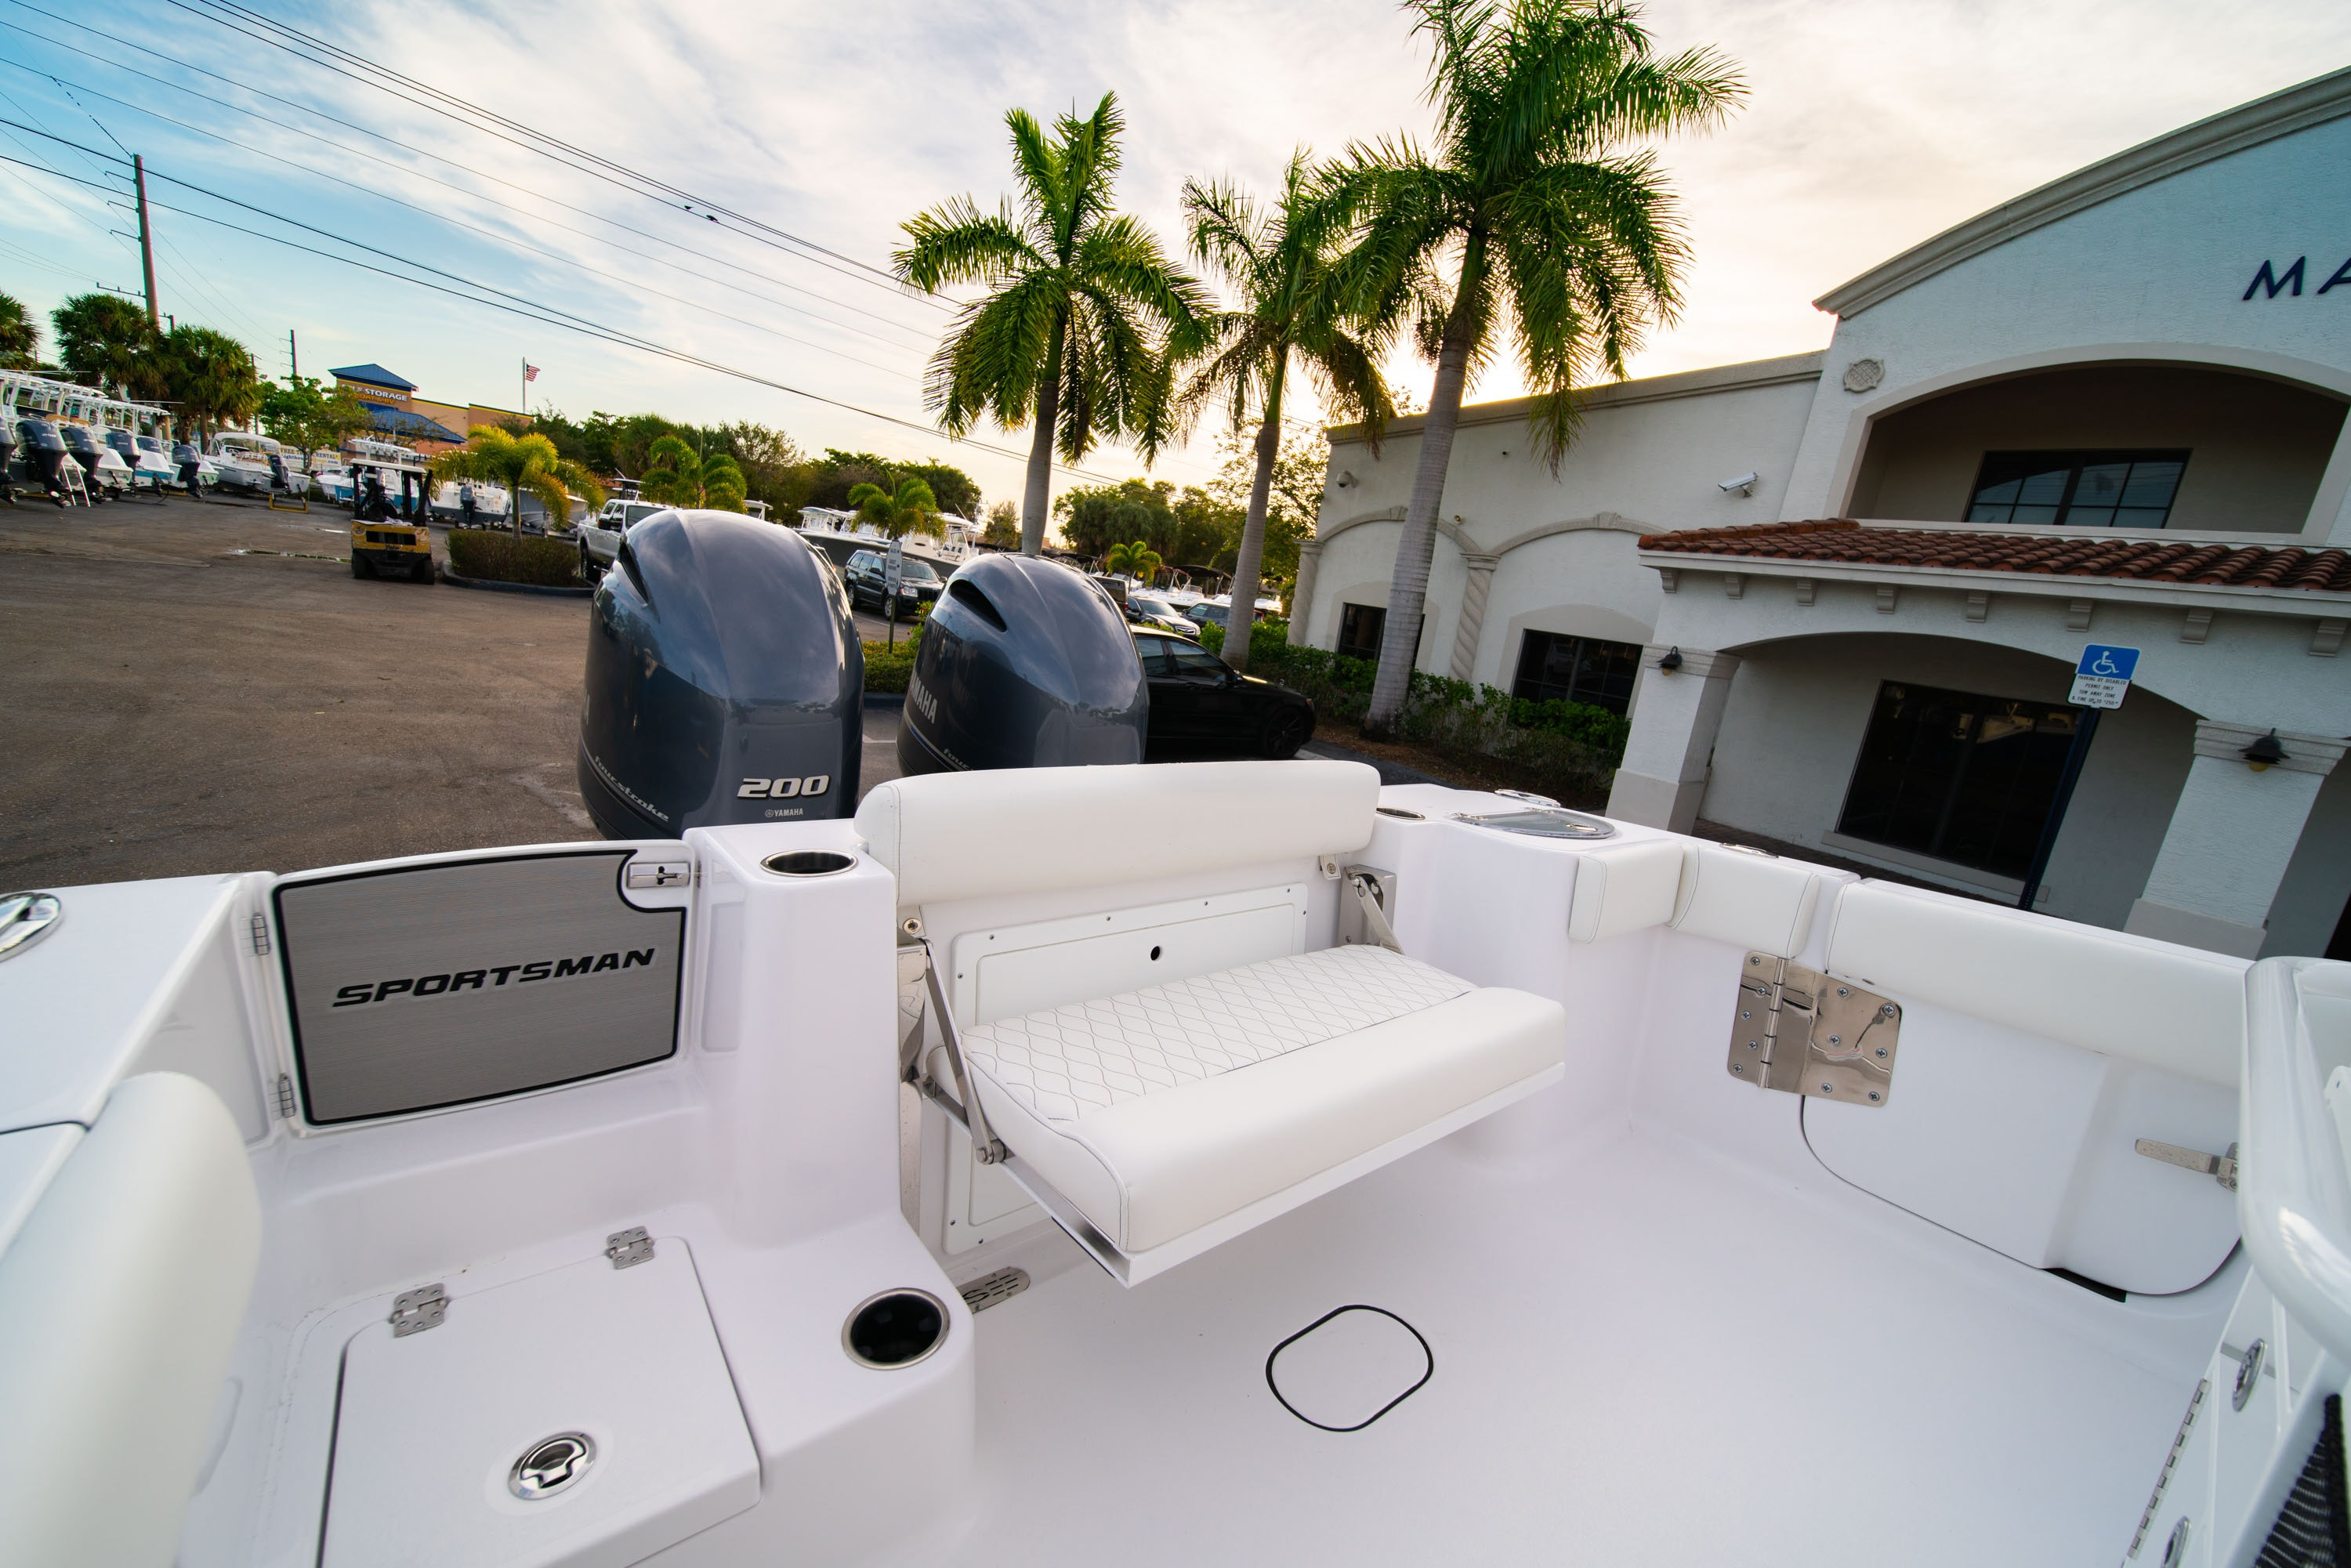 Thumbnail 12 for New 2020 Sportsman Open 282 Center Console boat for sale in West Palm Beach, FL